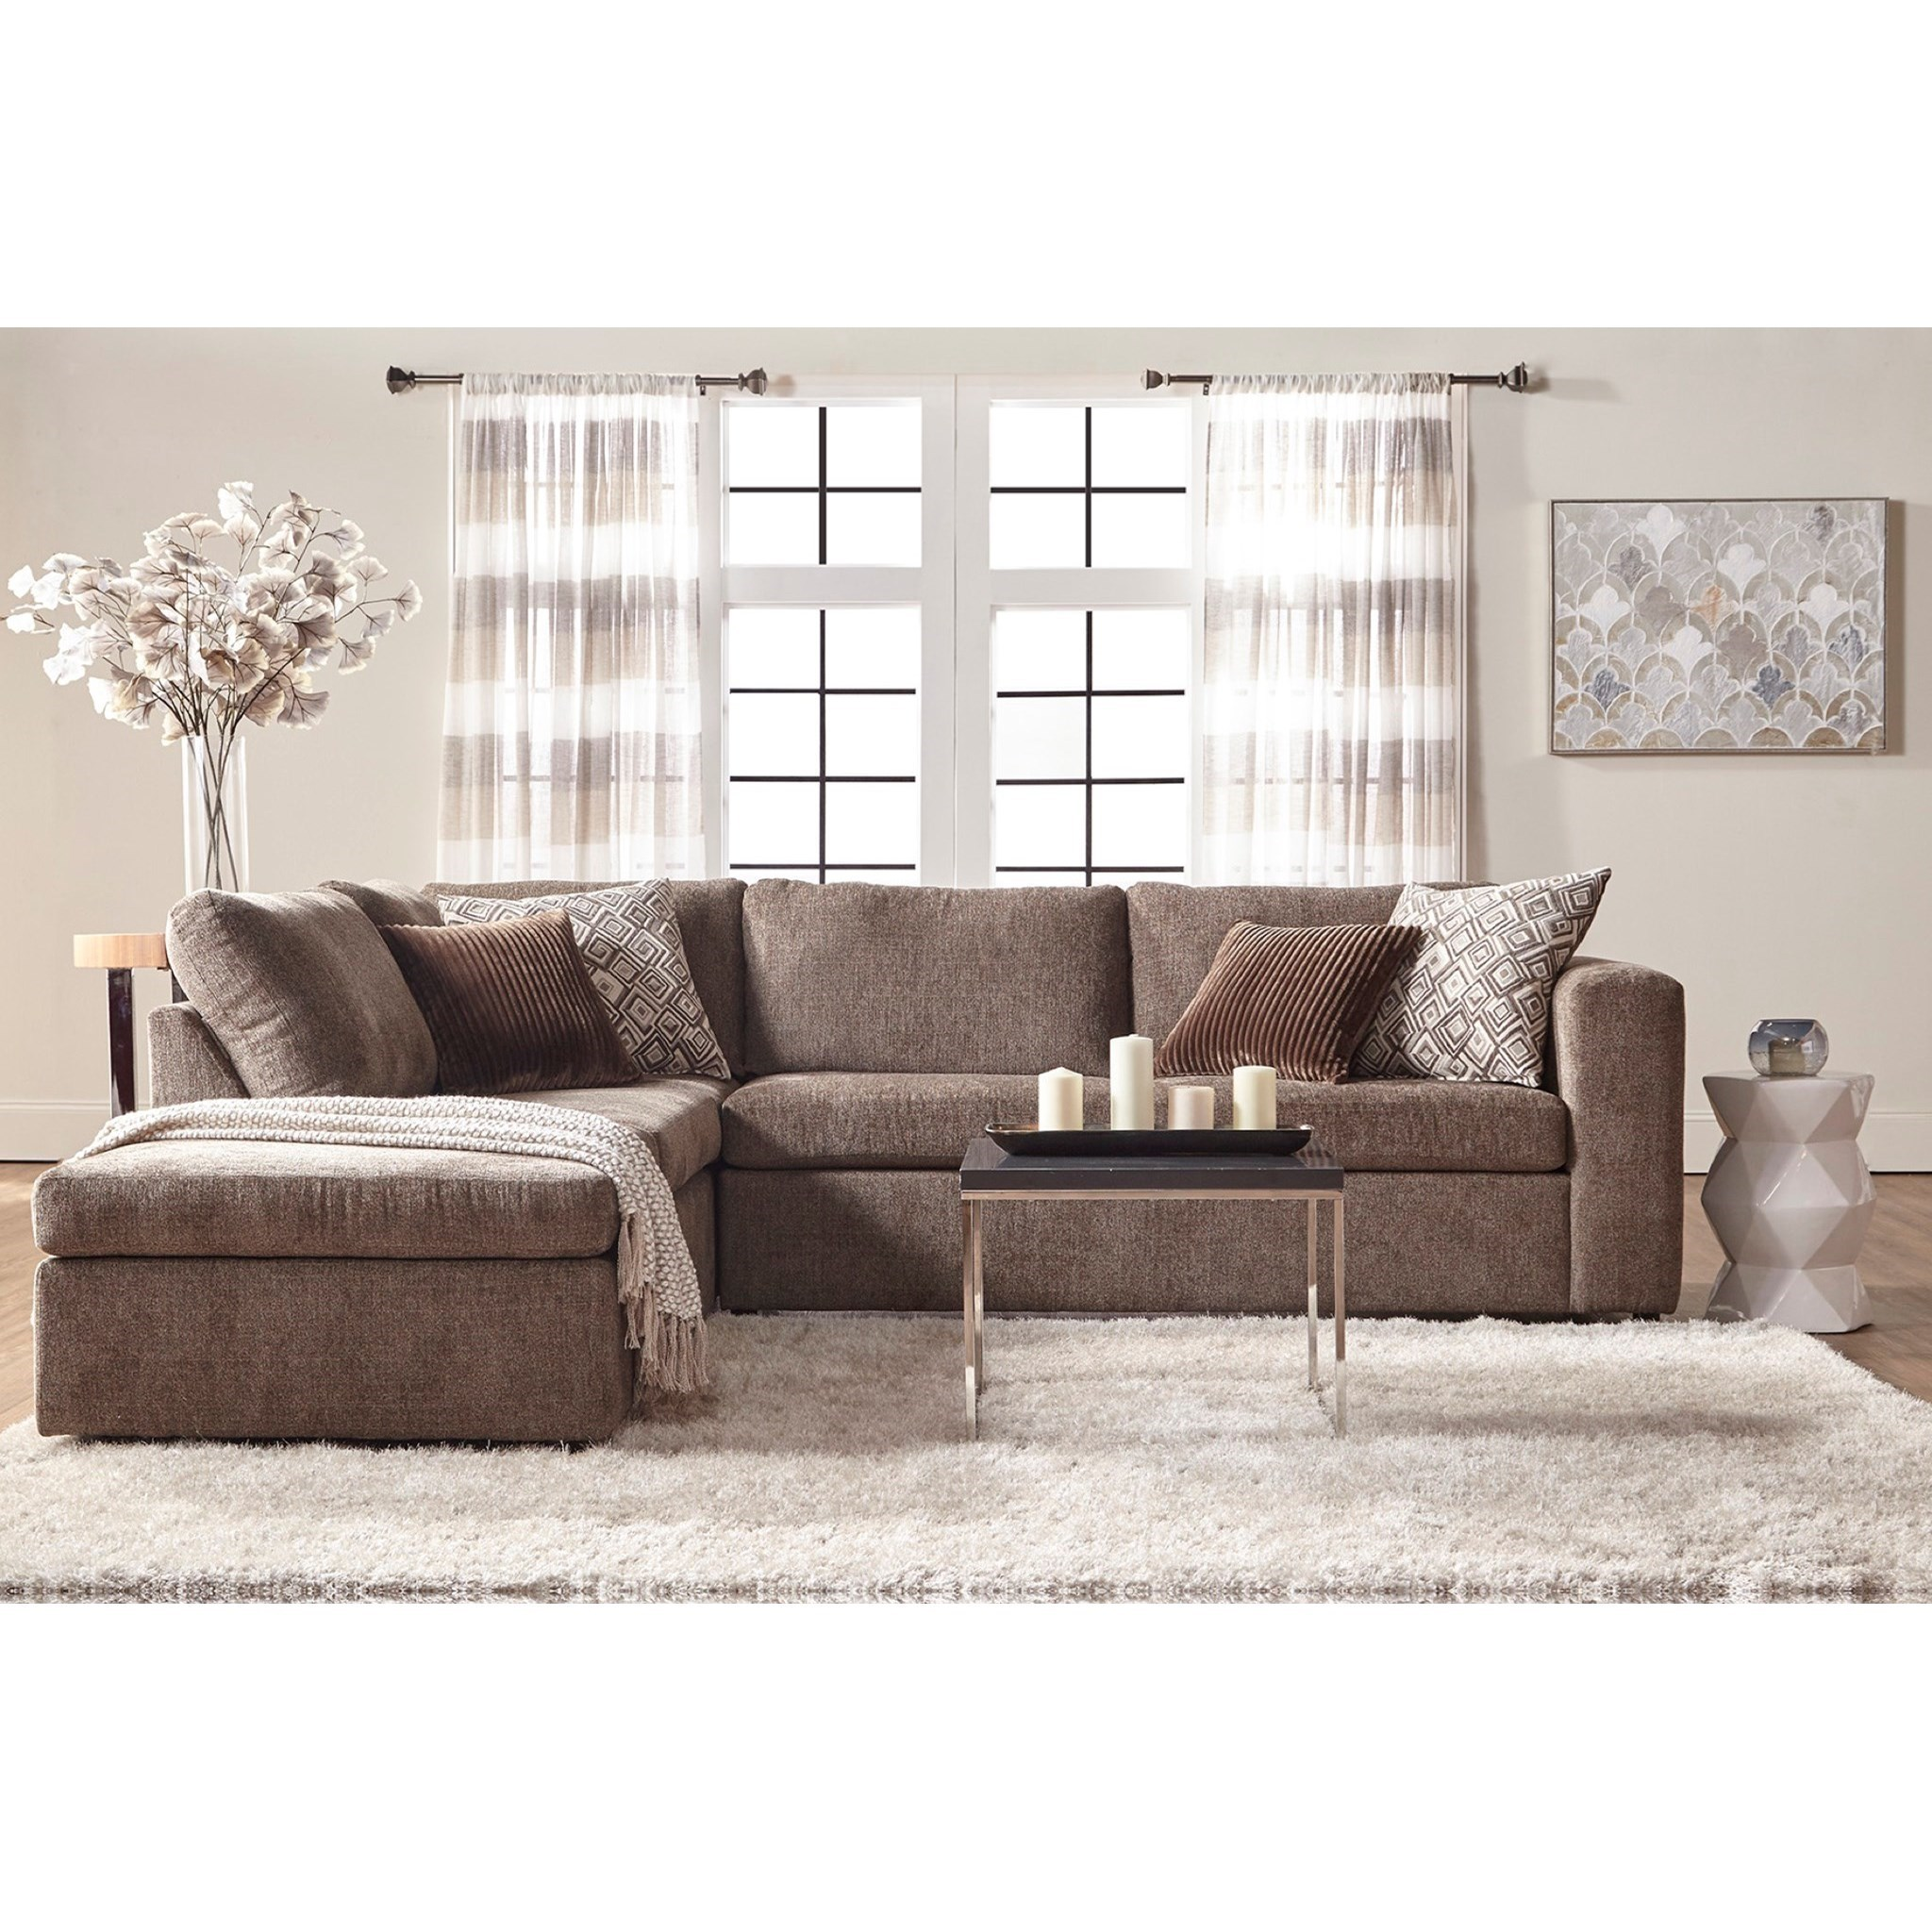 Serta Upholstery Angora Casual Contemporary Sectional Sofa with